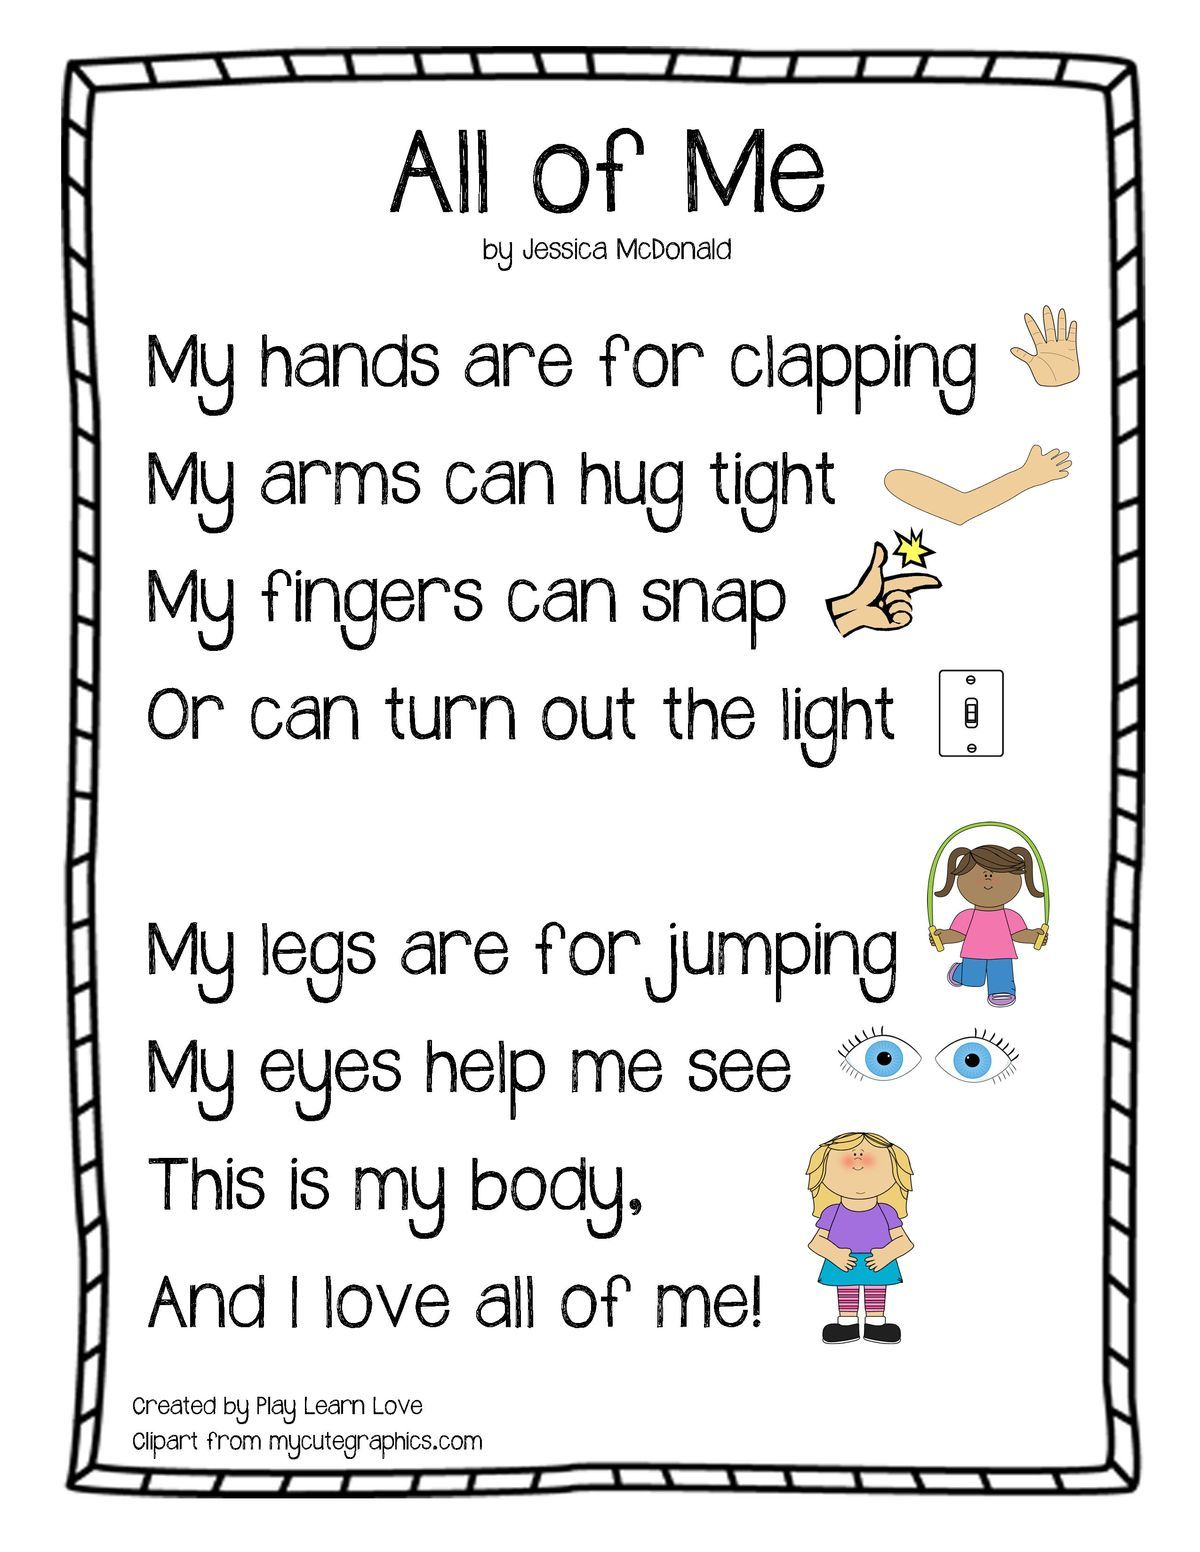 All About Me - My Body Lesson Plan | Room 15 | Lesson plans